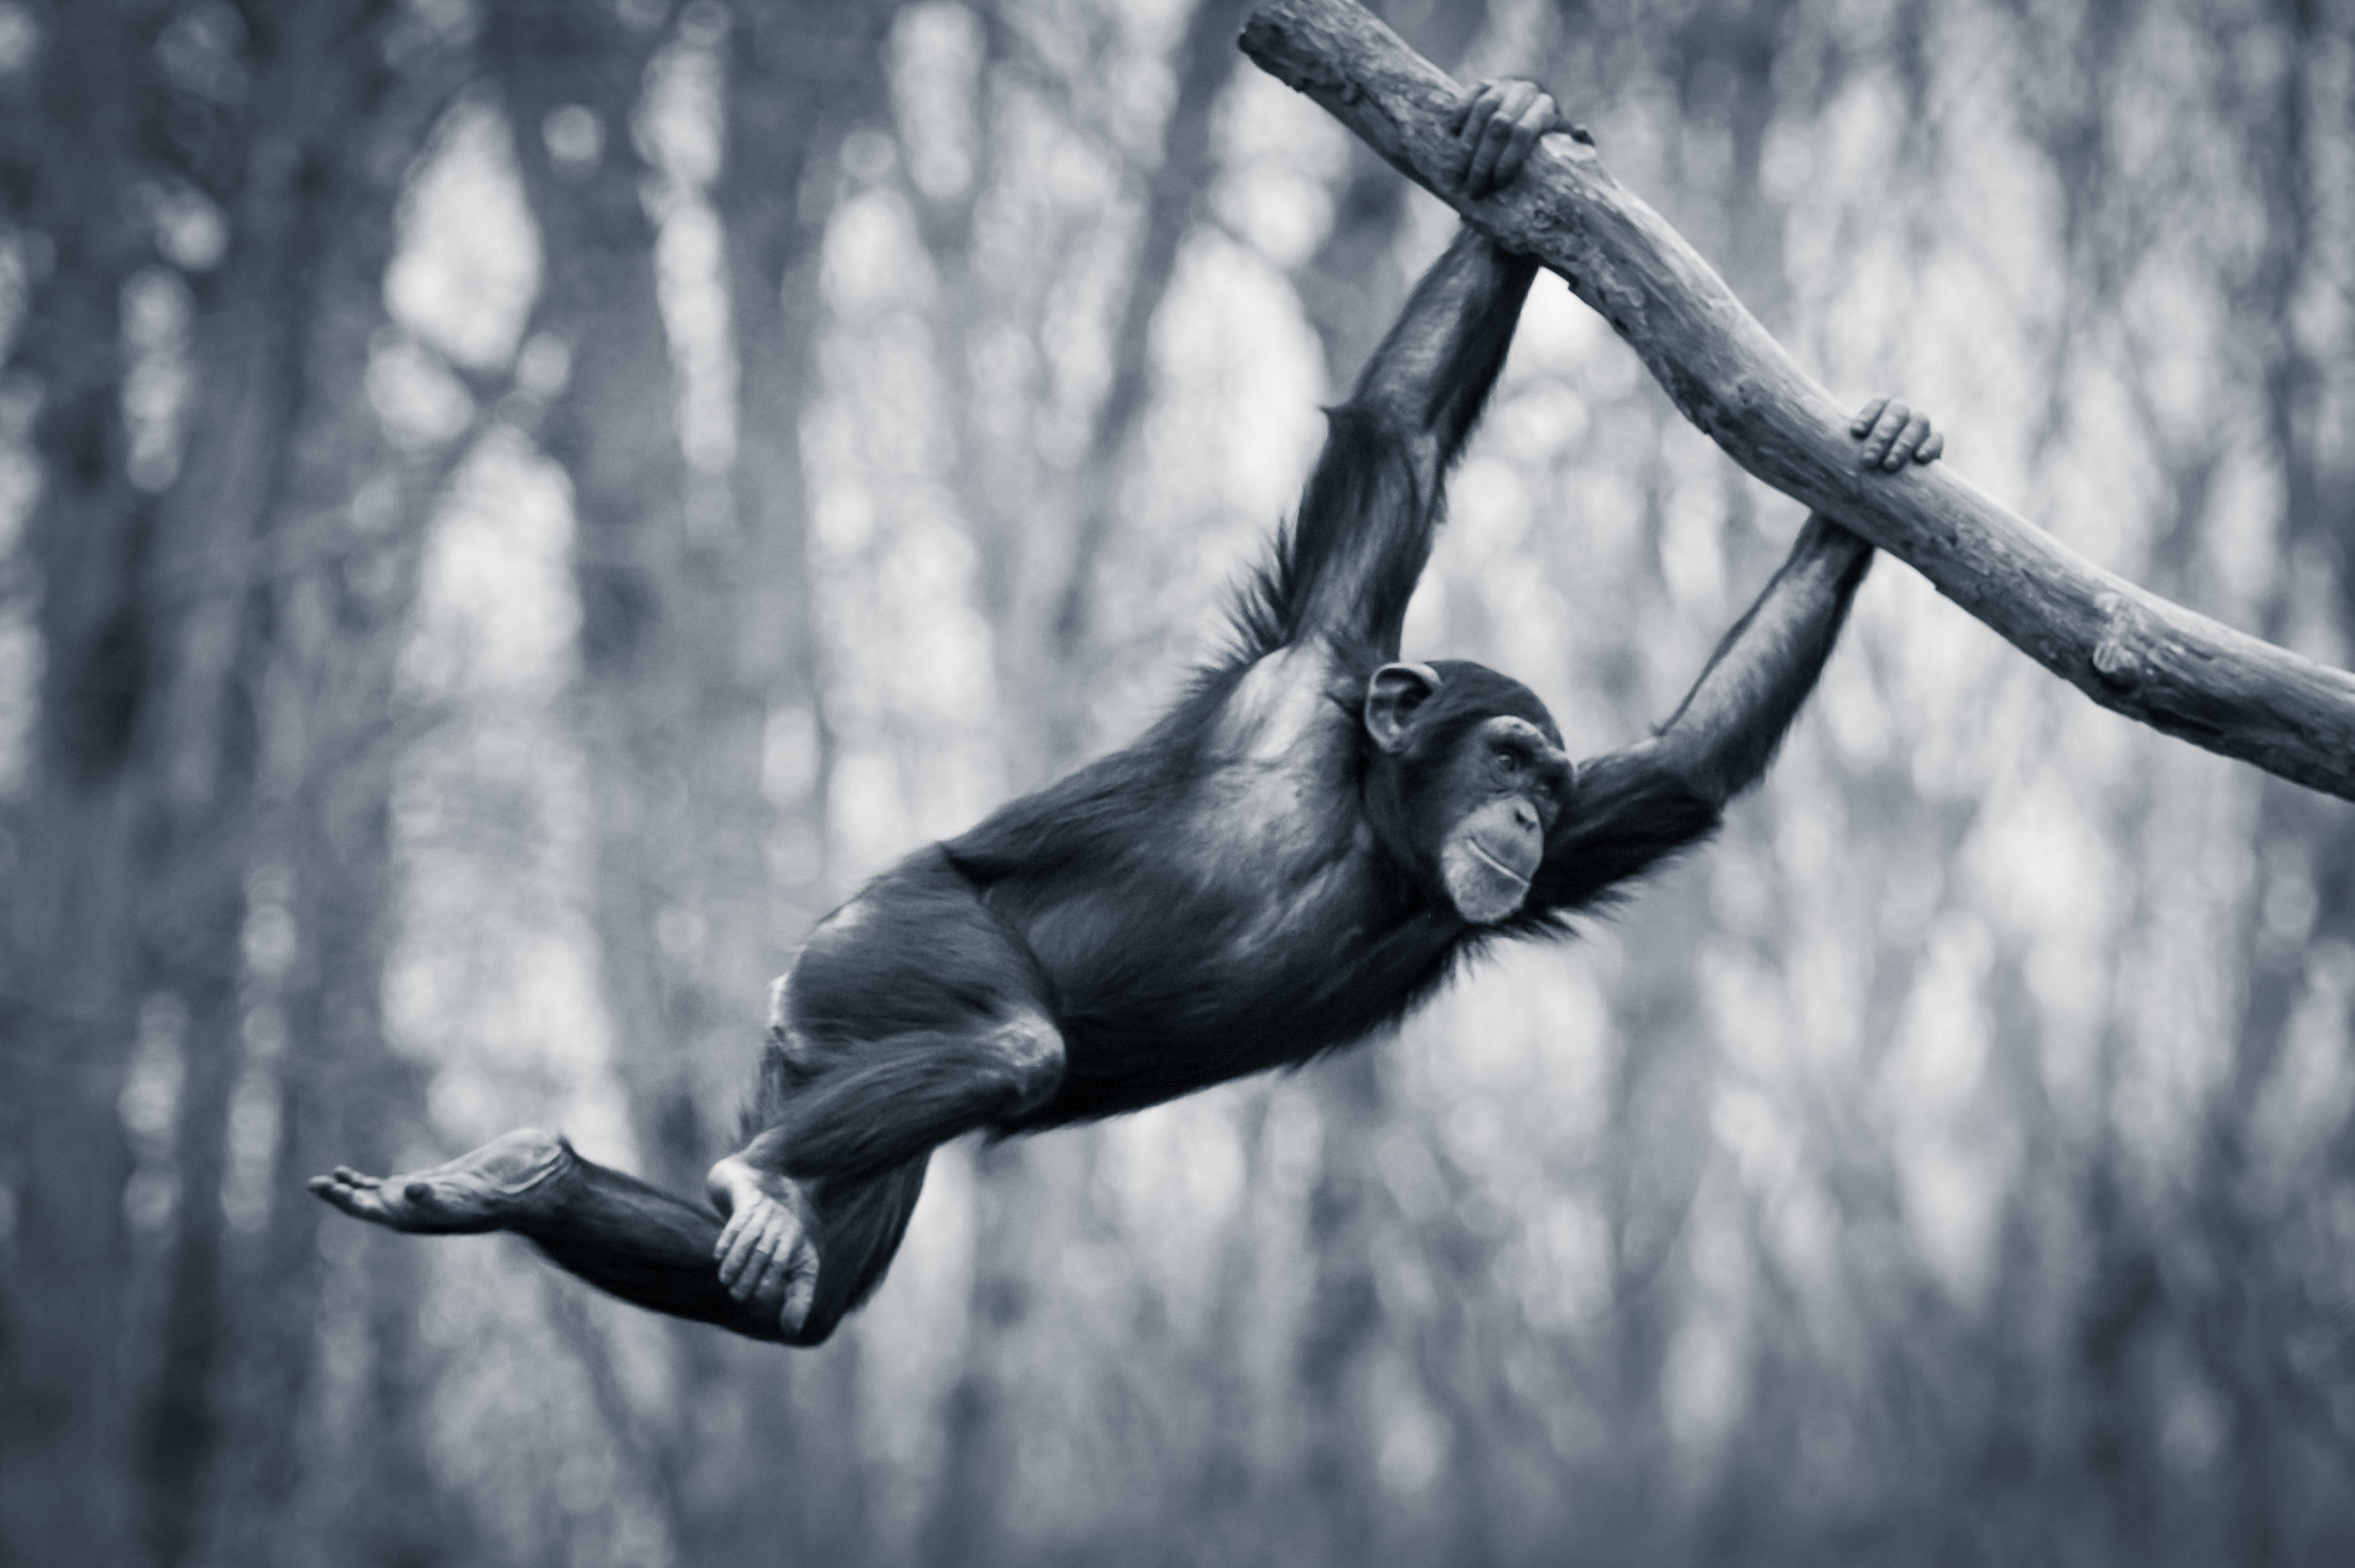 A chimpanzee moving through the treetop at speed, swinging from branch to branch. Photo©Getty